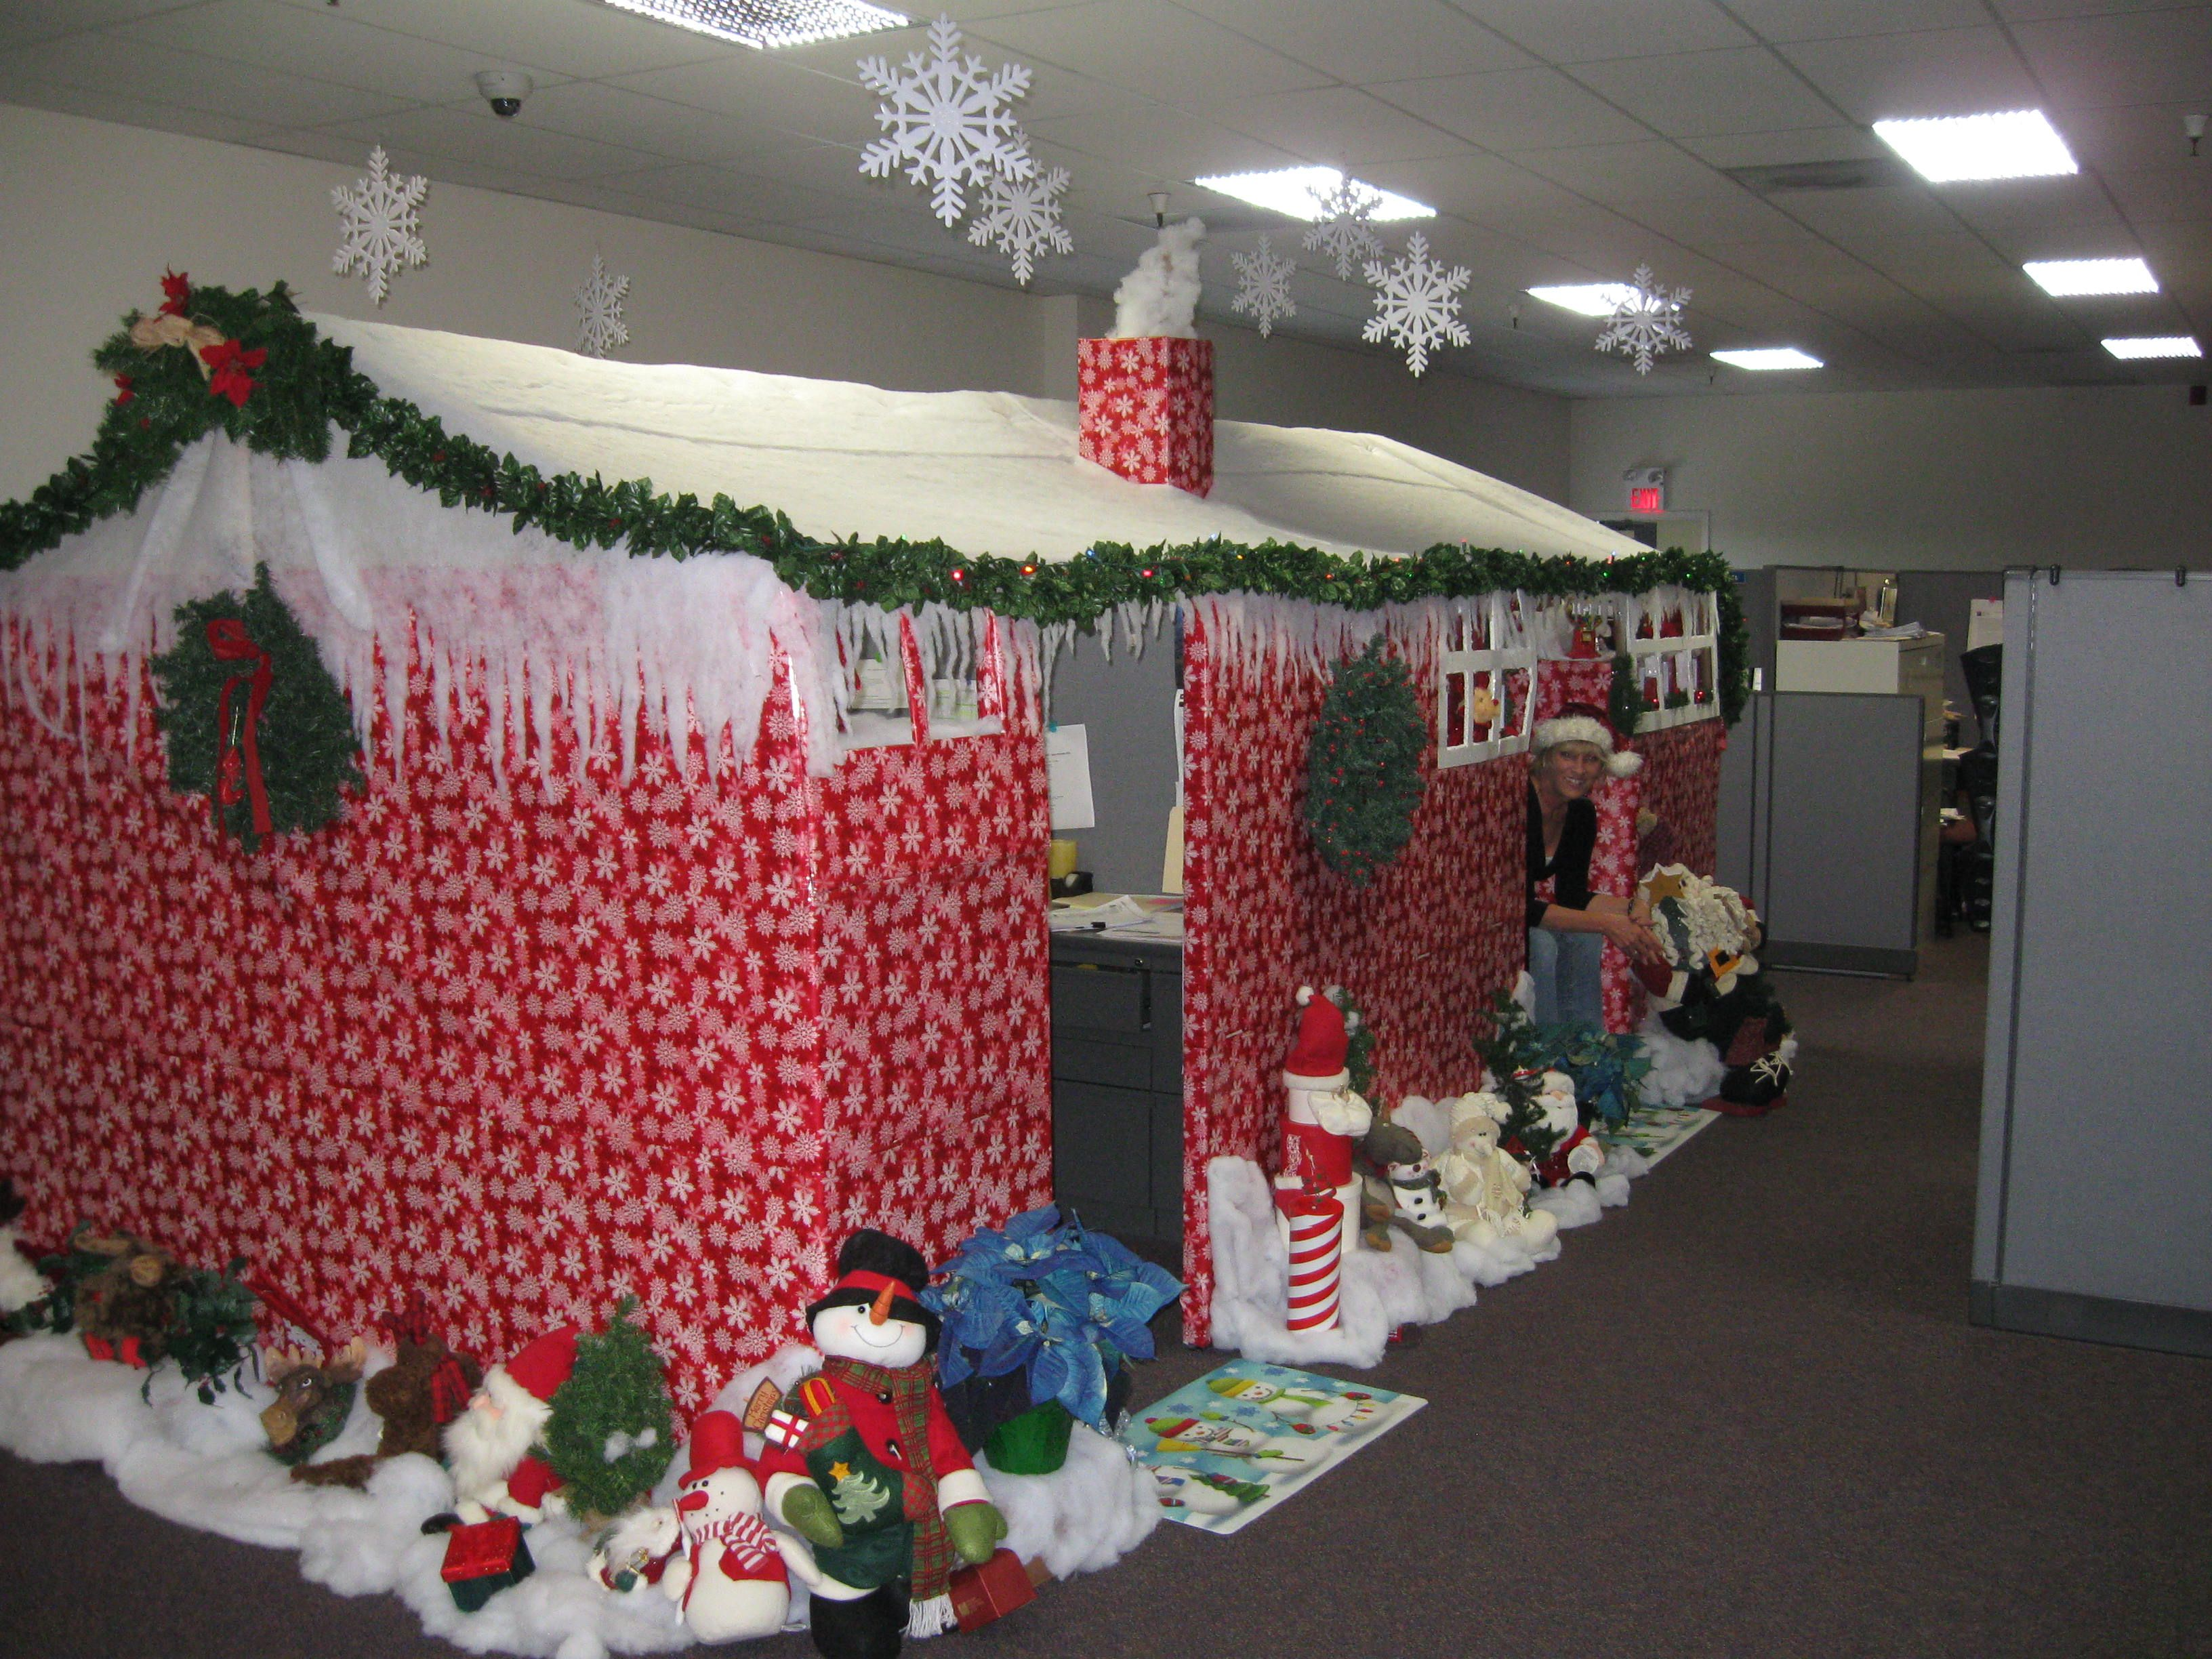 Cubicle Decor decorate office cubicles, office holiday decor | cubicle